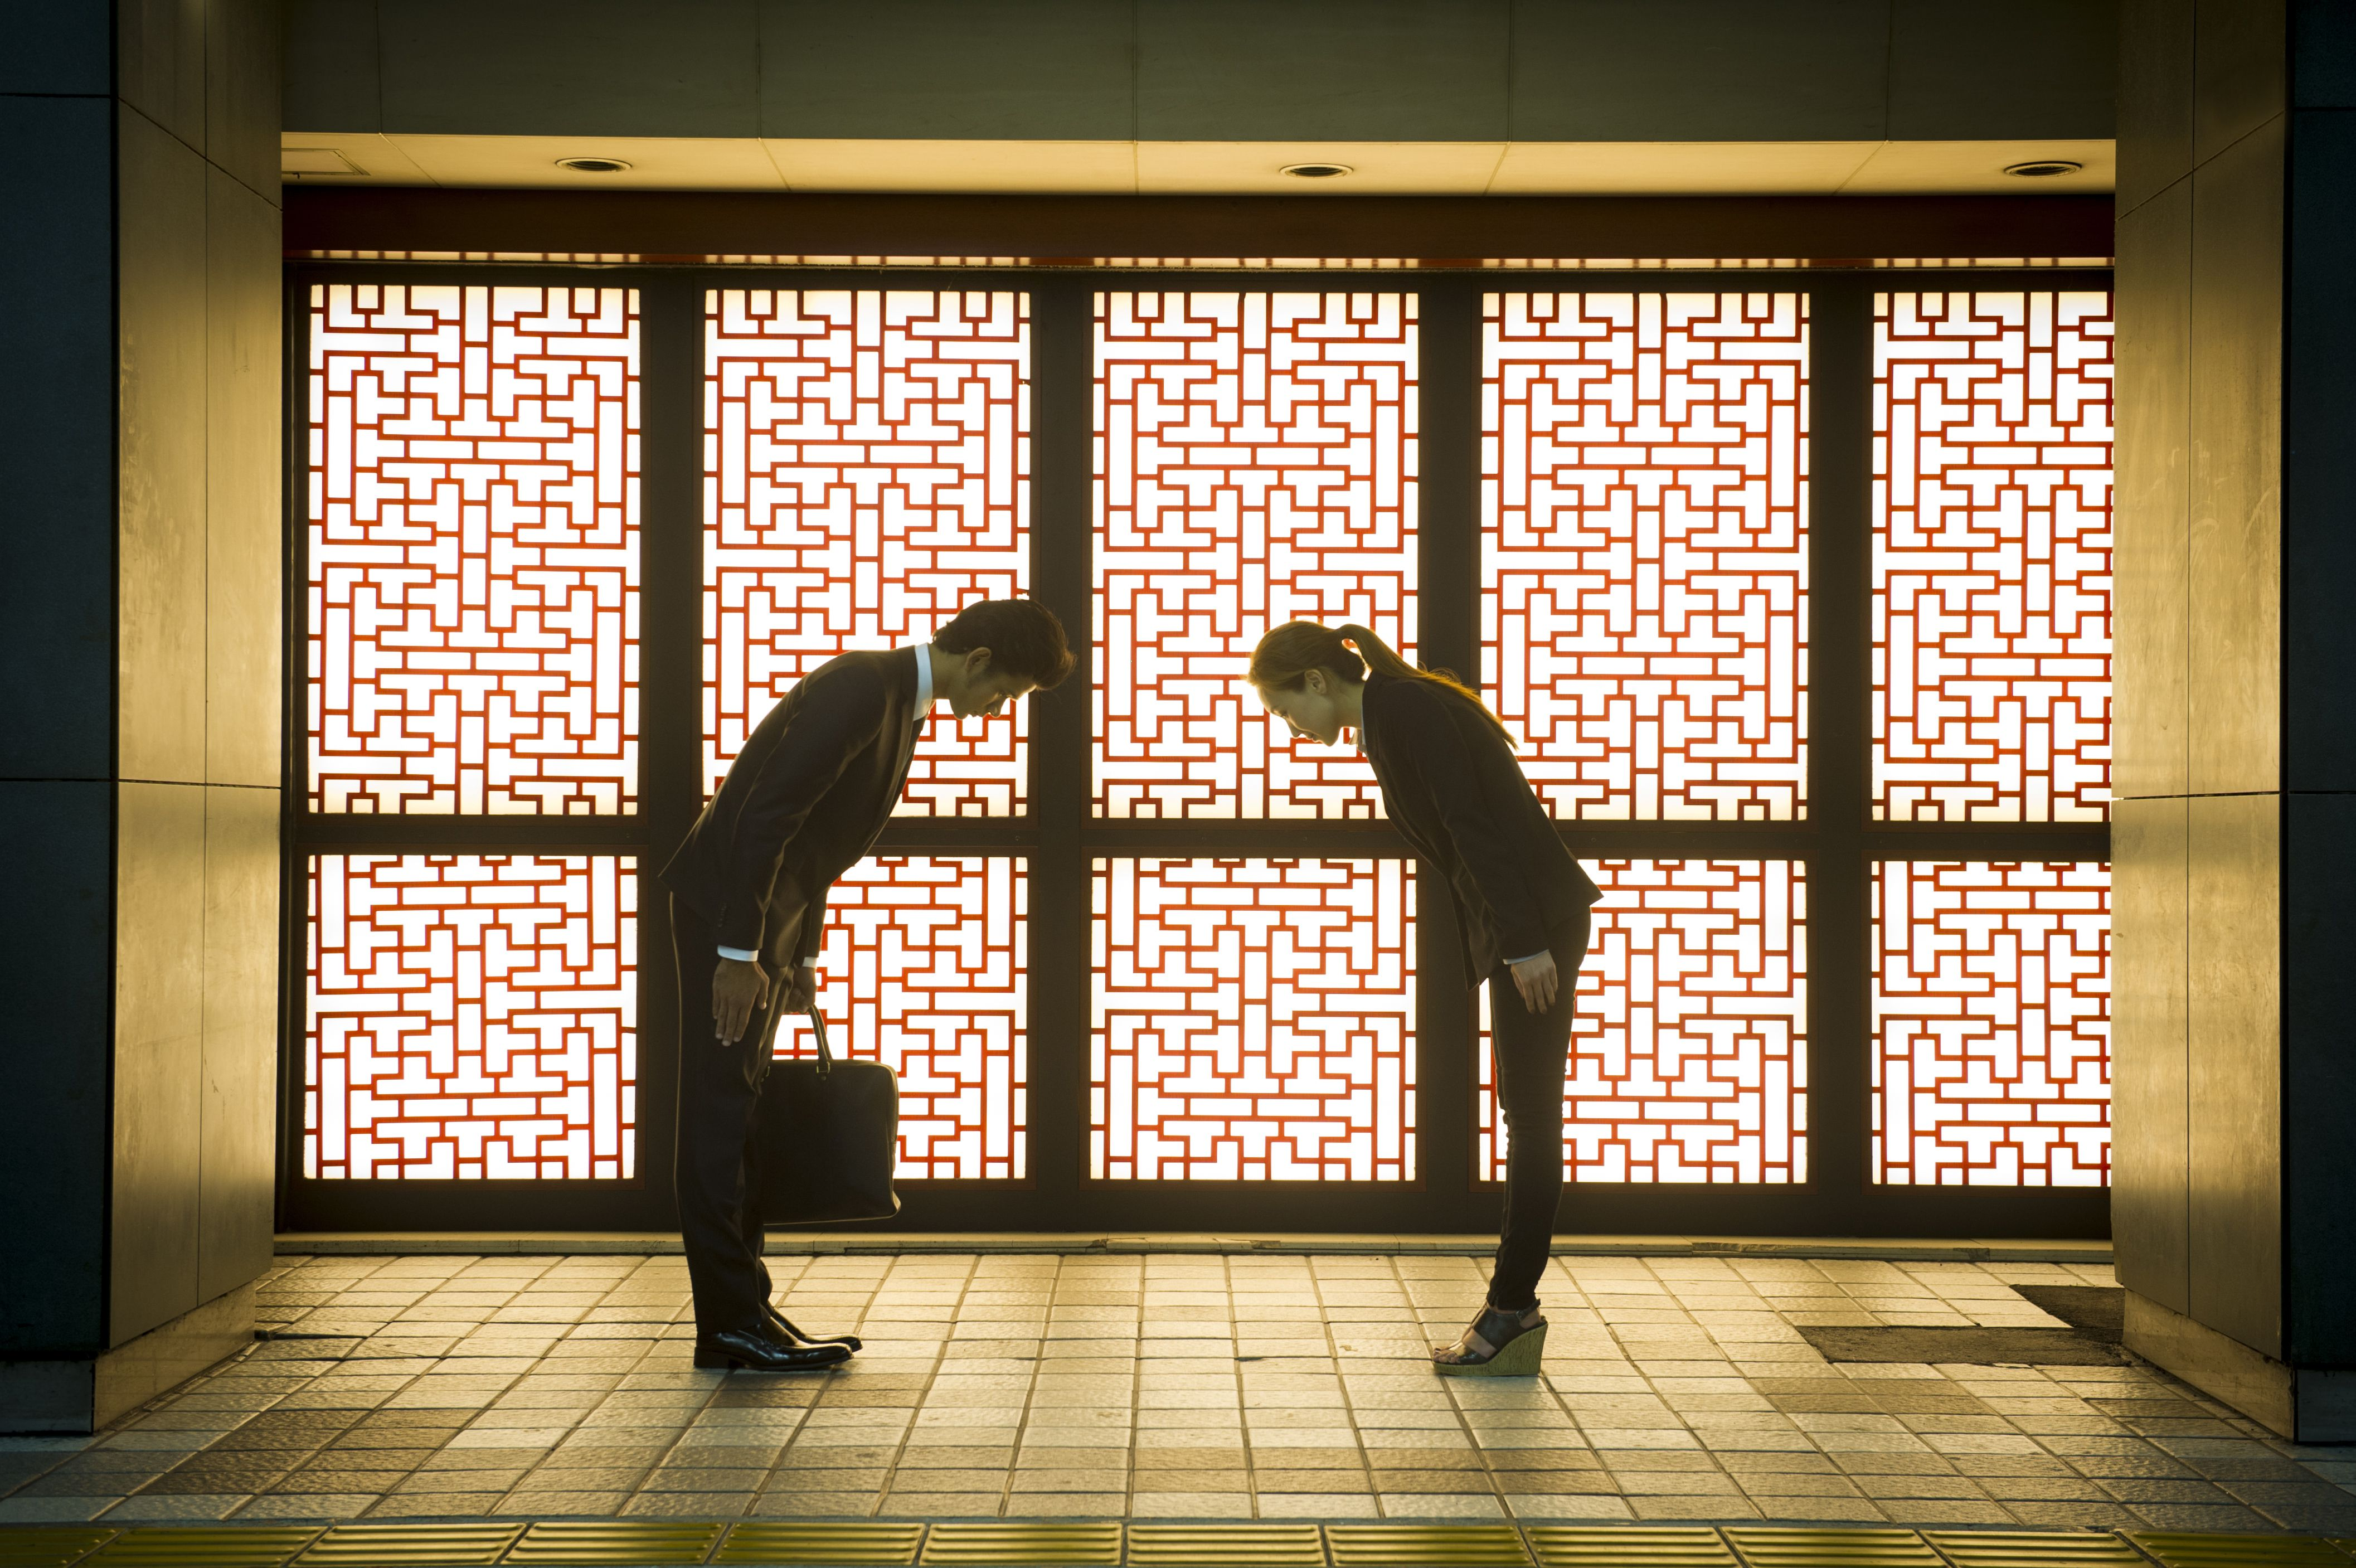 In Japan, you should bow in greeting and to say goodbye.